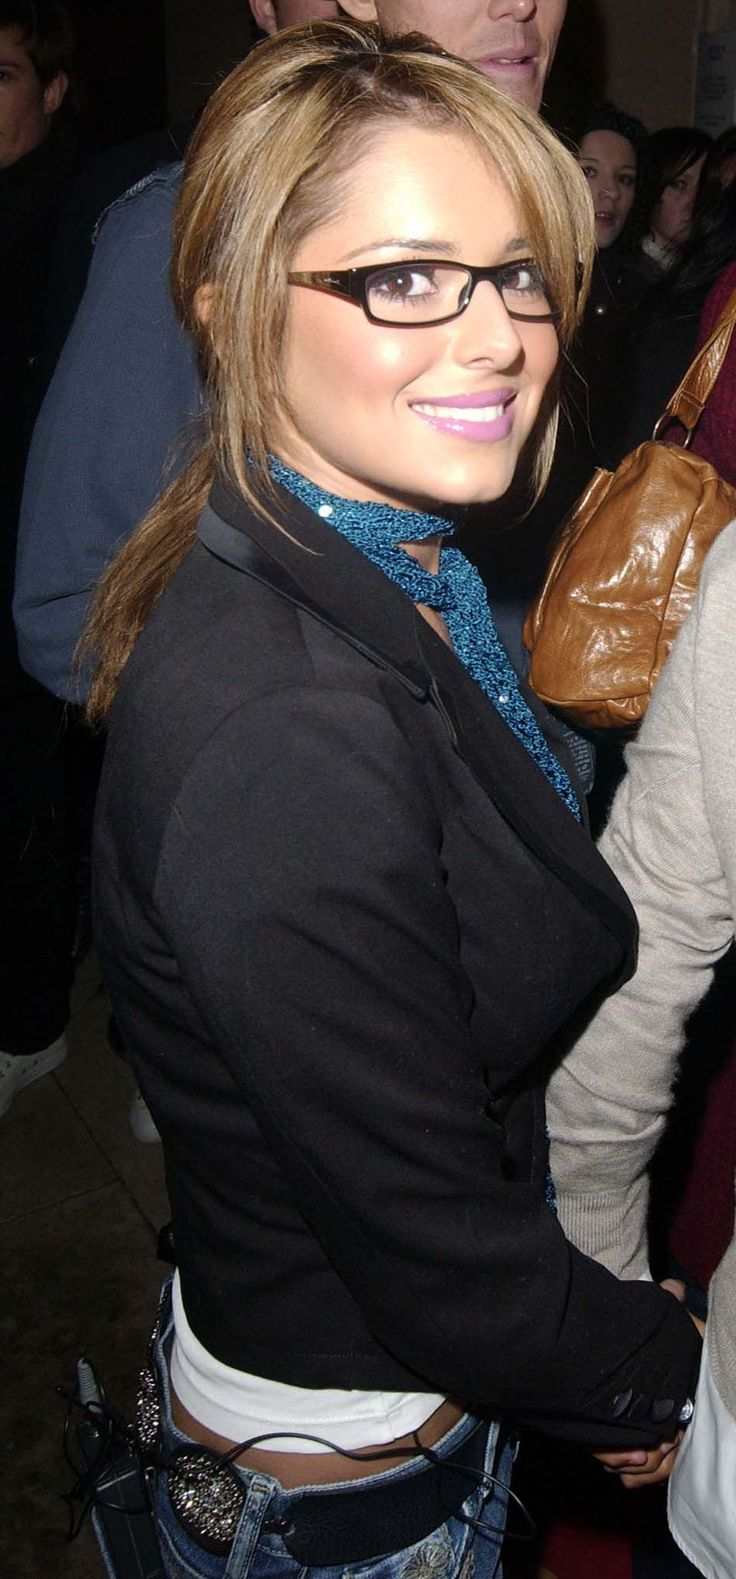 Cheryl Cole (like this kind of glasses.. check if can replace when can)